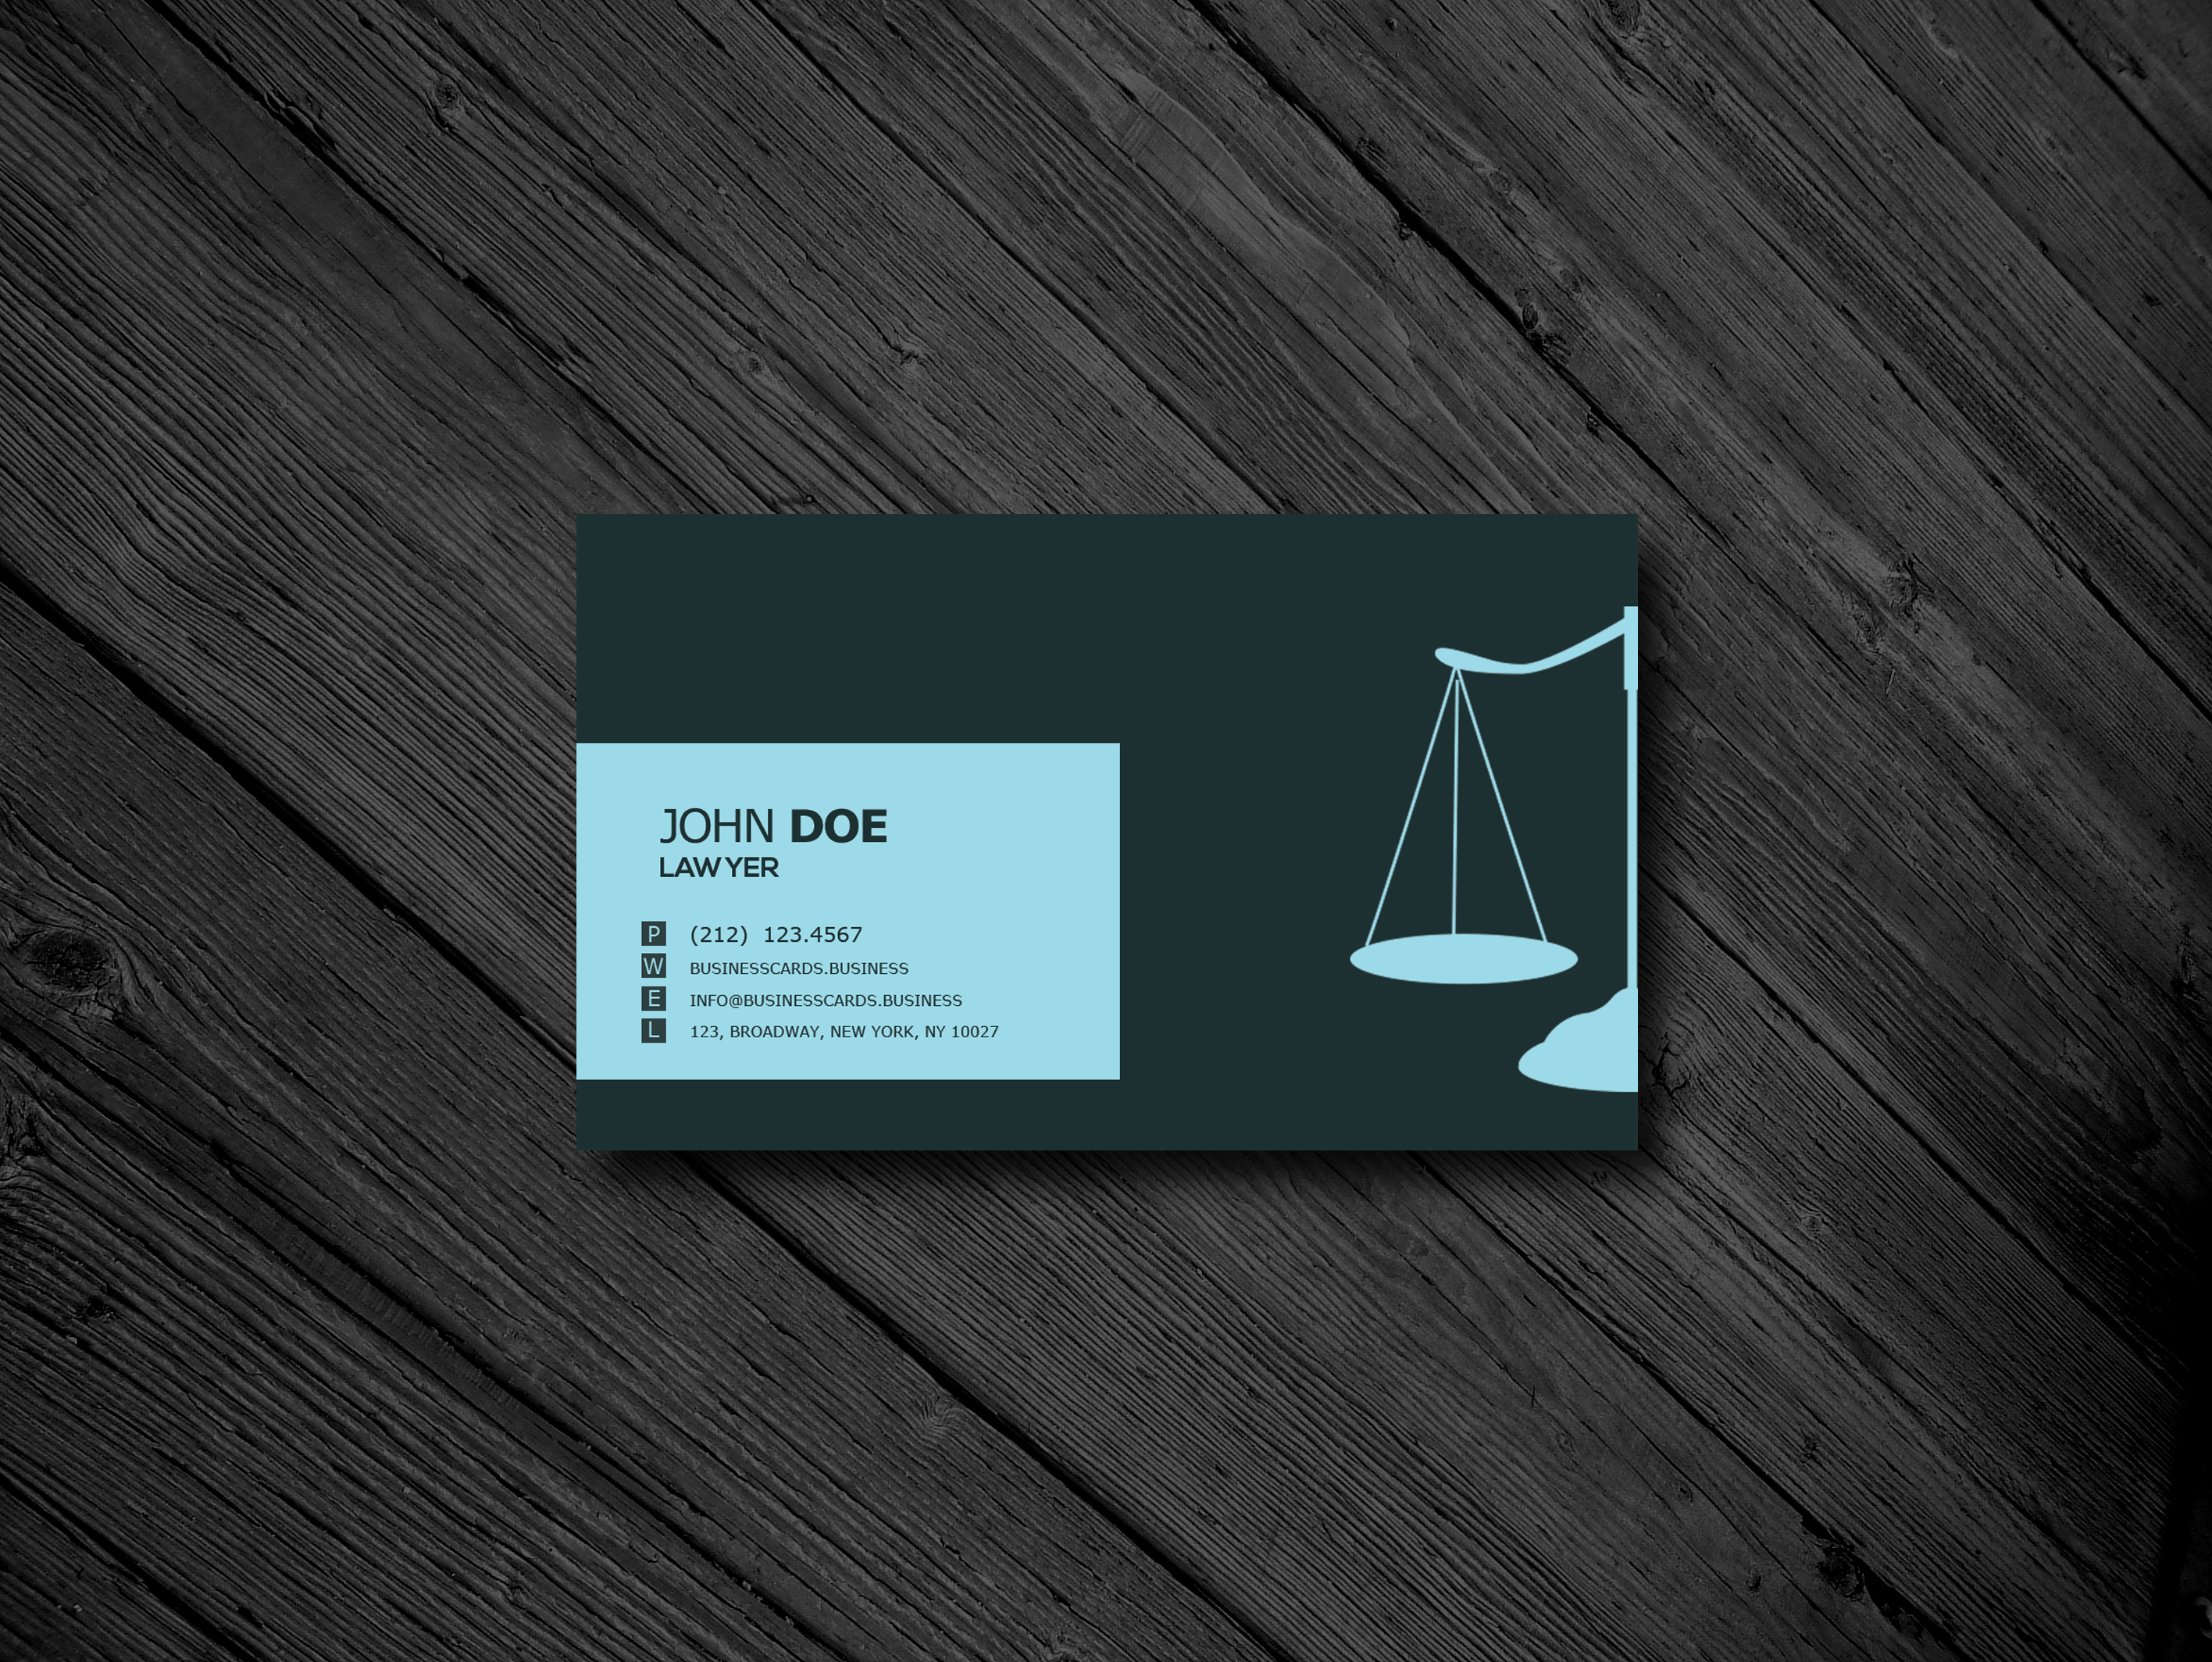 Free business card templates business cards templates free lawyer business card psd template friedricerecipe Images